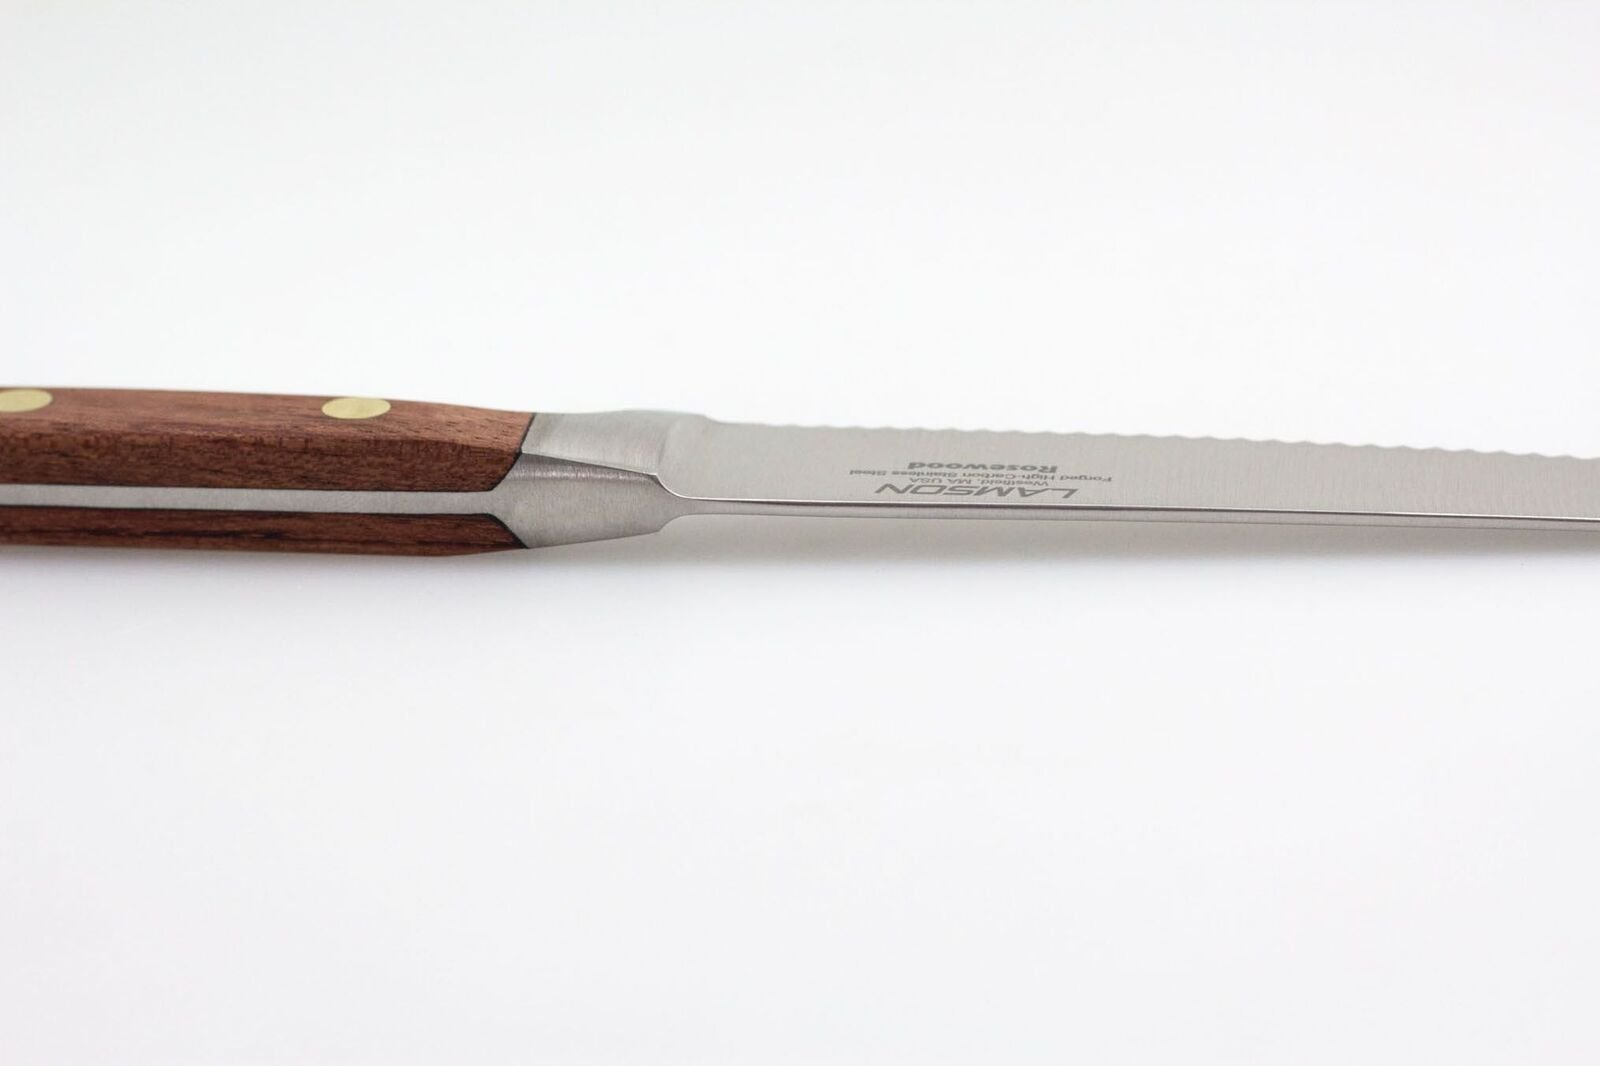 Lamson 39717 Rosewood Forged 5-inch Tomato Knife, Serrated Edge by Lamson (Image #2)